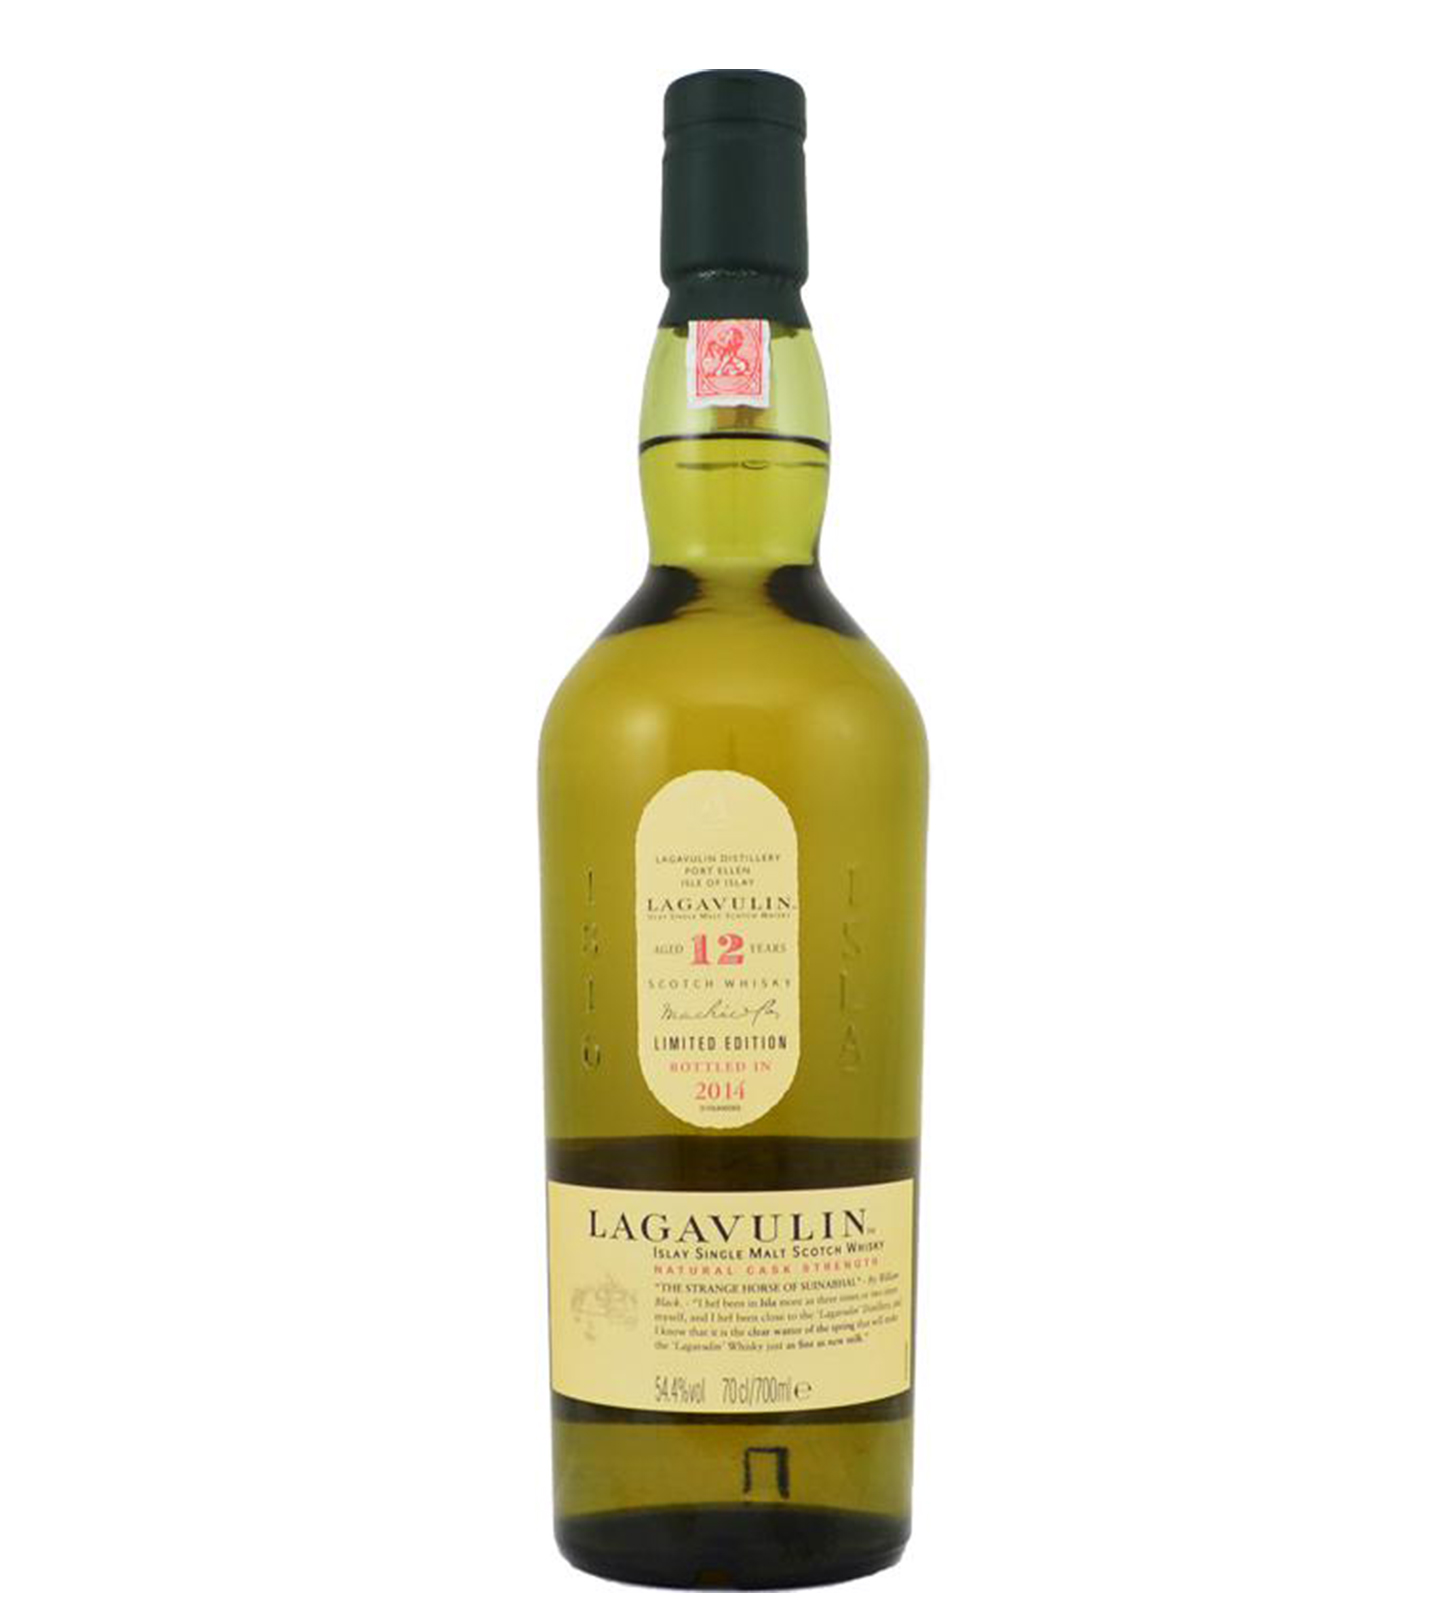 Lagavulin 12 years – Release #14